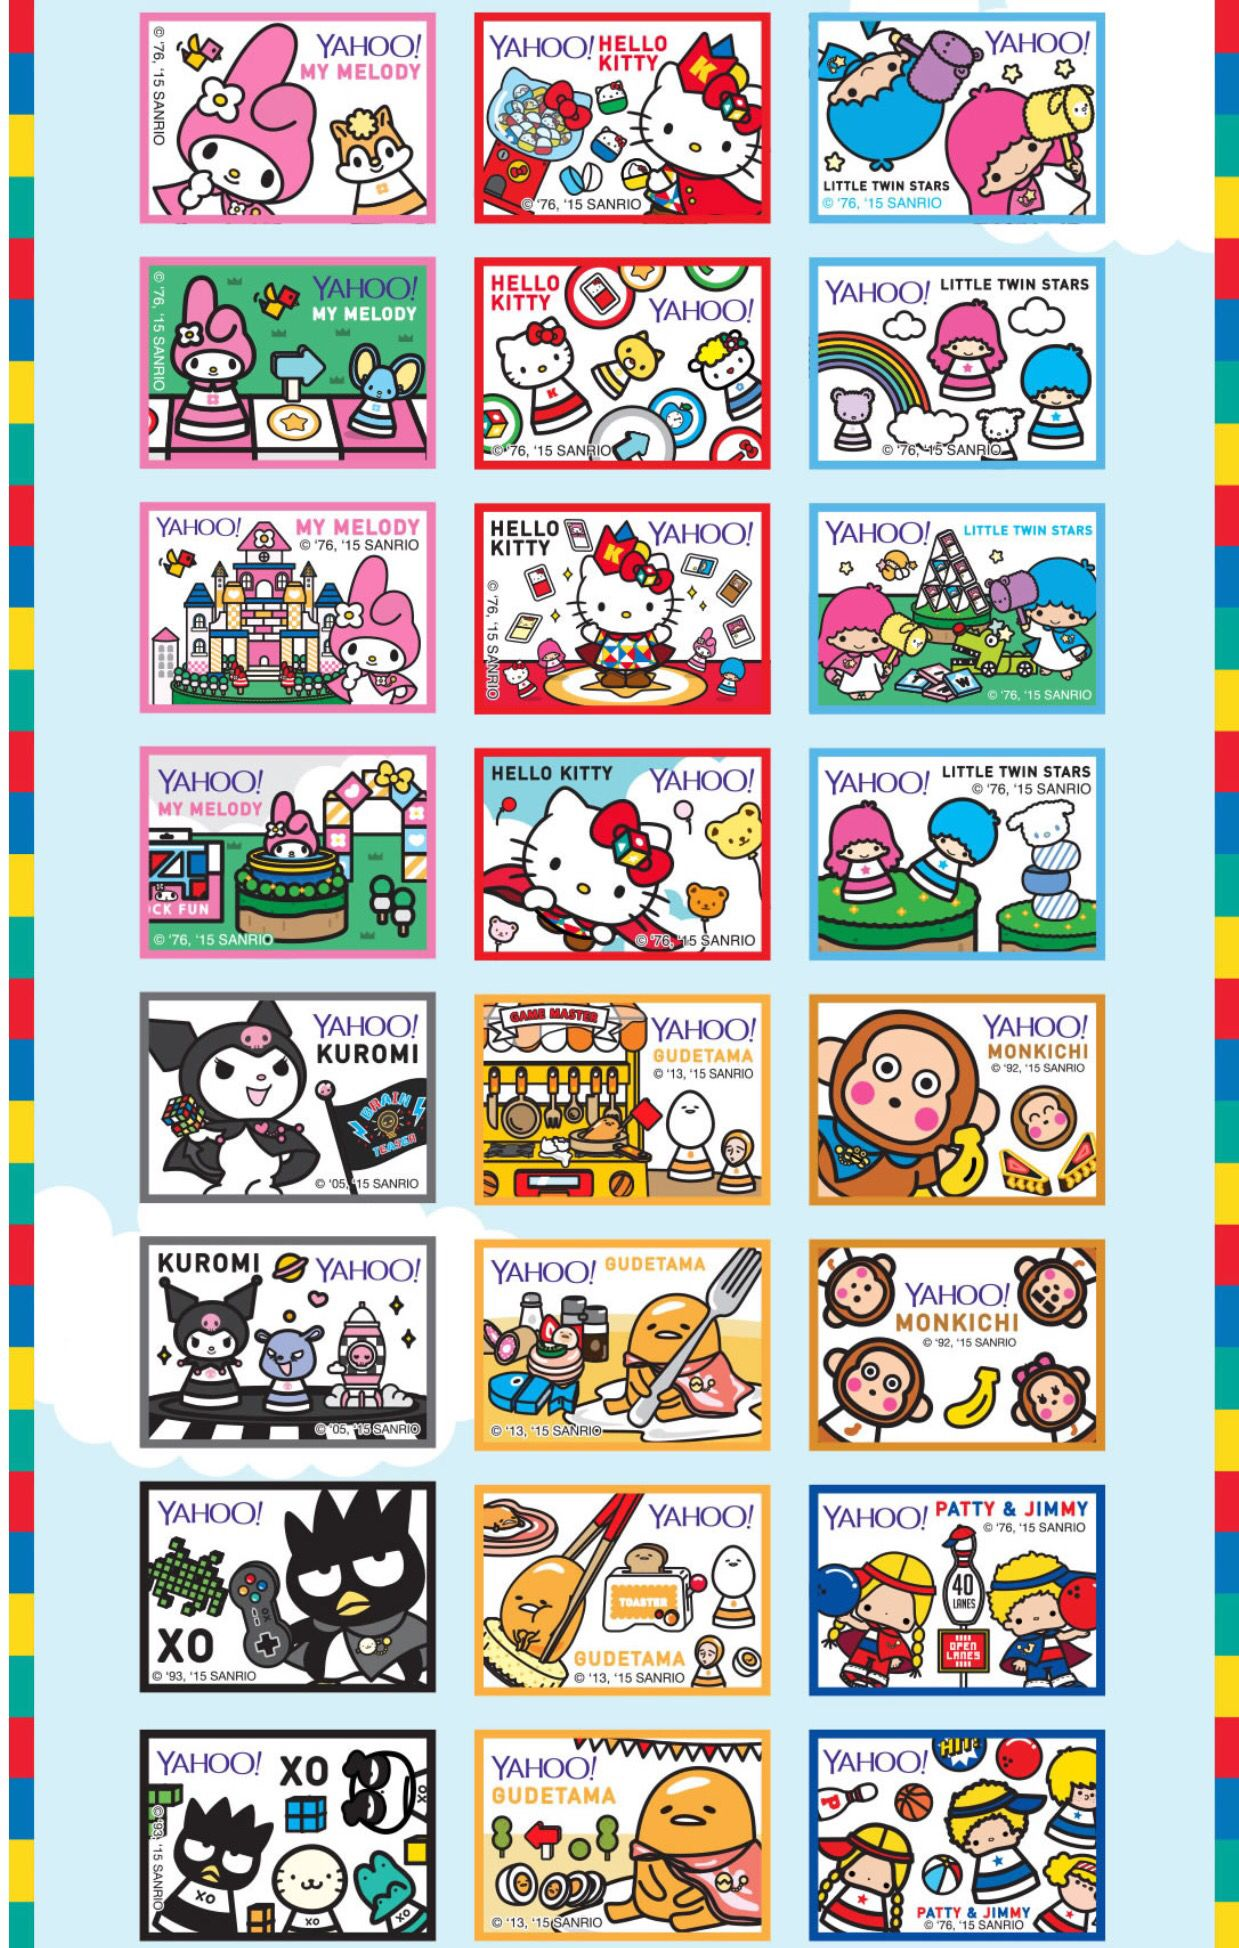 4d6faba85bc3 Sanrio Game Master in collaboration with Yahoo! ( ○ )